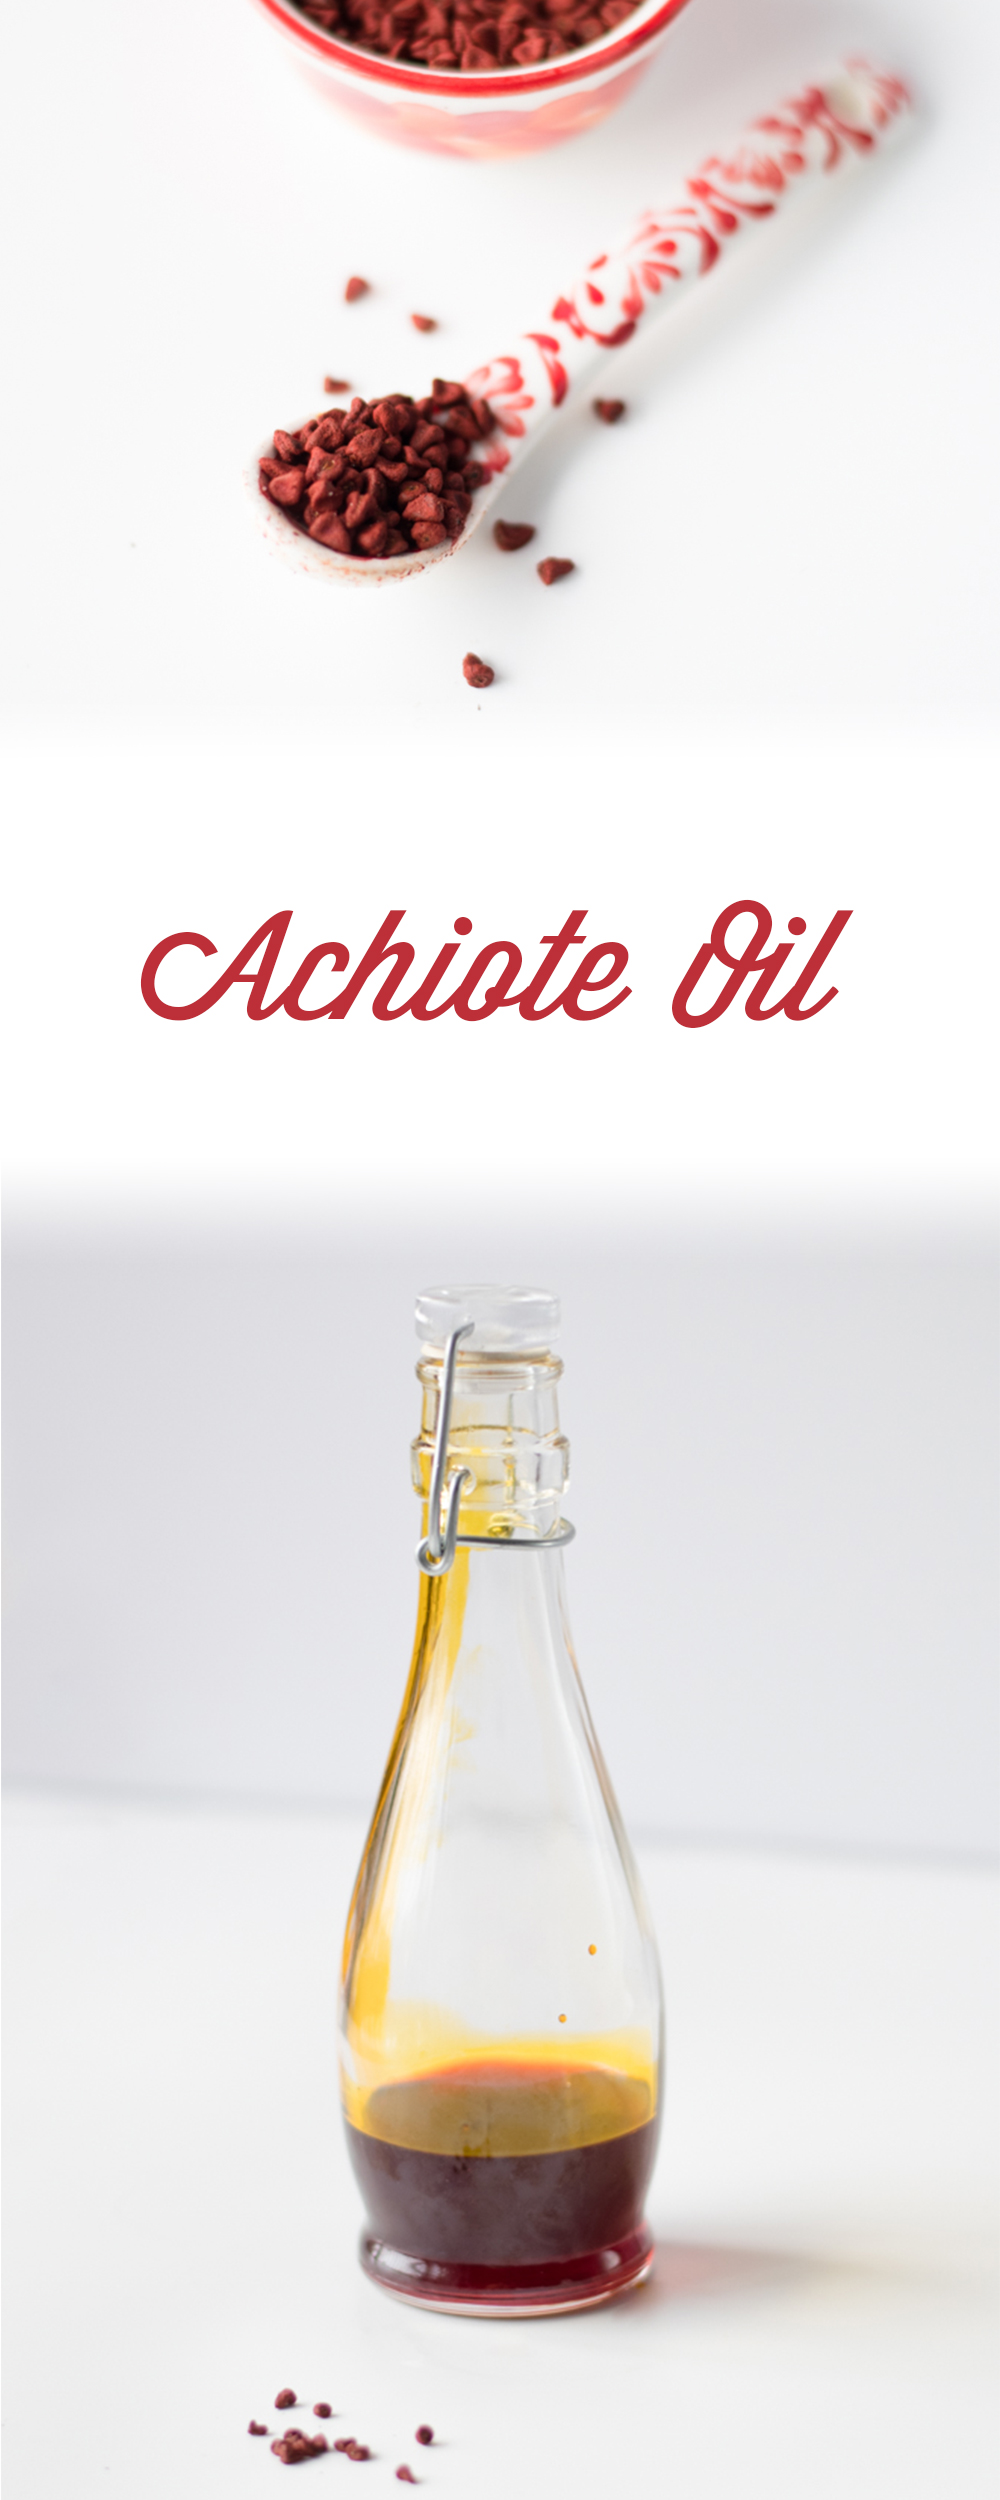 Guide on how to make achiote oil from annatto seeds. A popular oil in Latin American cuisine. It gives an unique color and flavor to recipes.